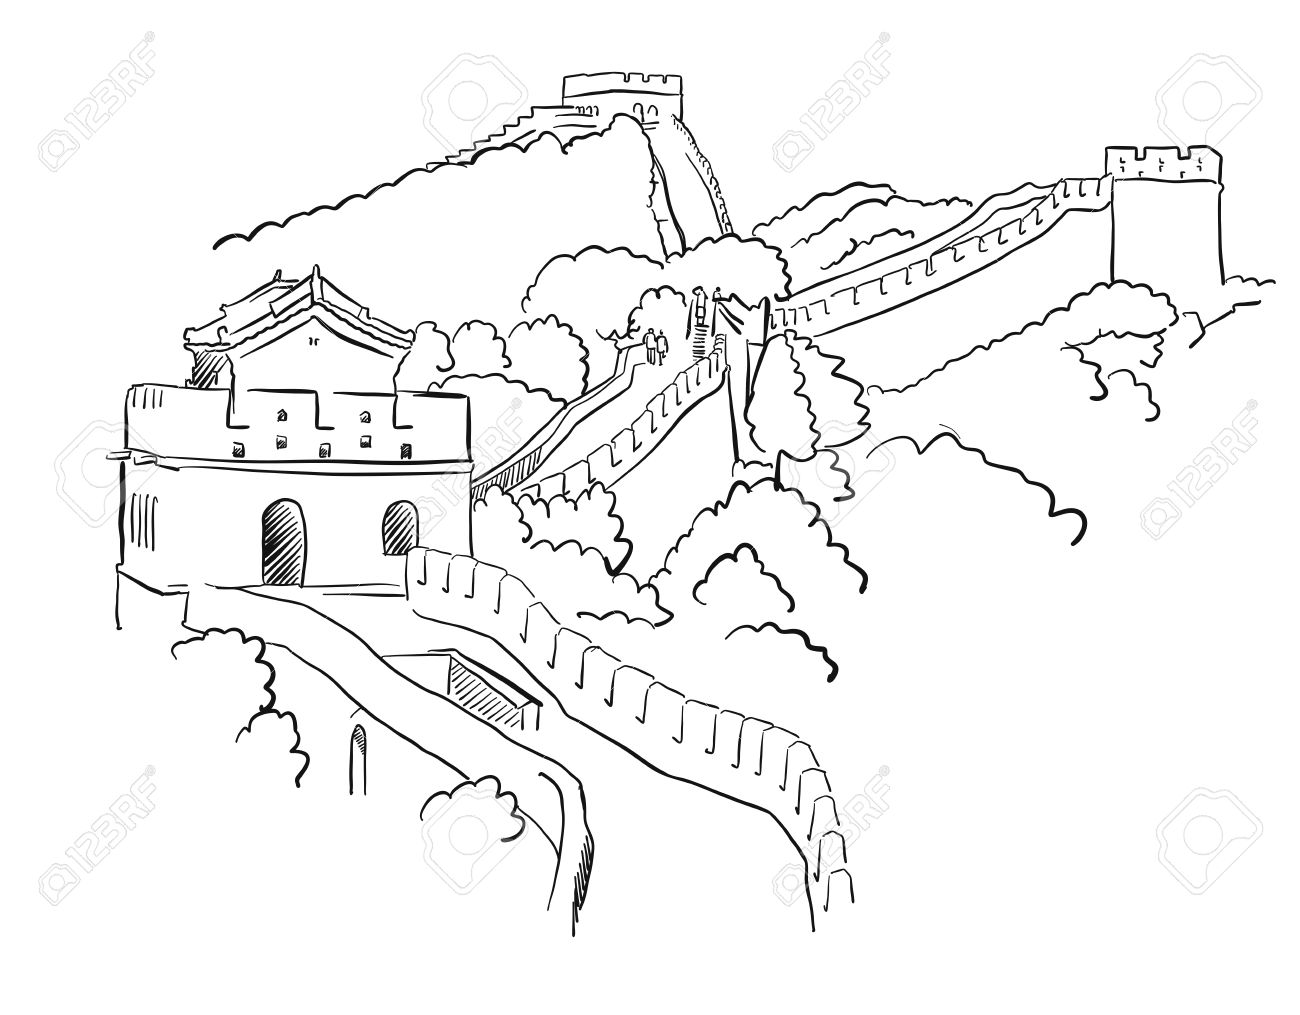 Coloring sheet great wall of china - China Great Wall Vector Sketch Famous Destination Landmark Hand Drawn Outline Artwork Stock Vector